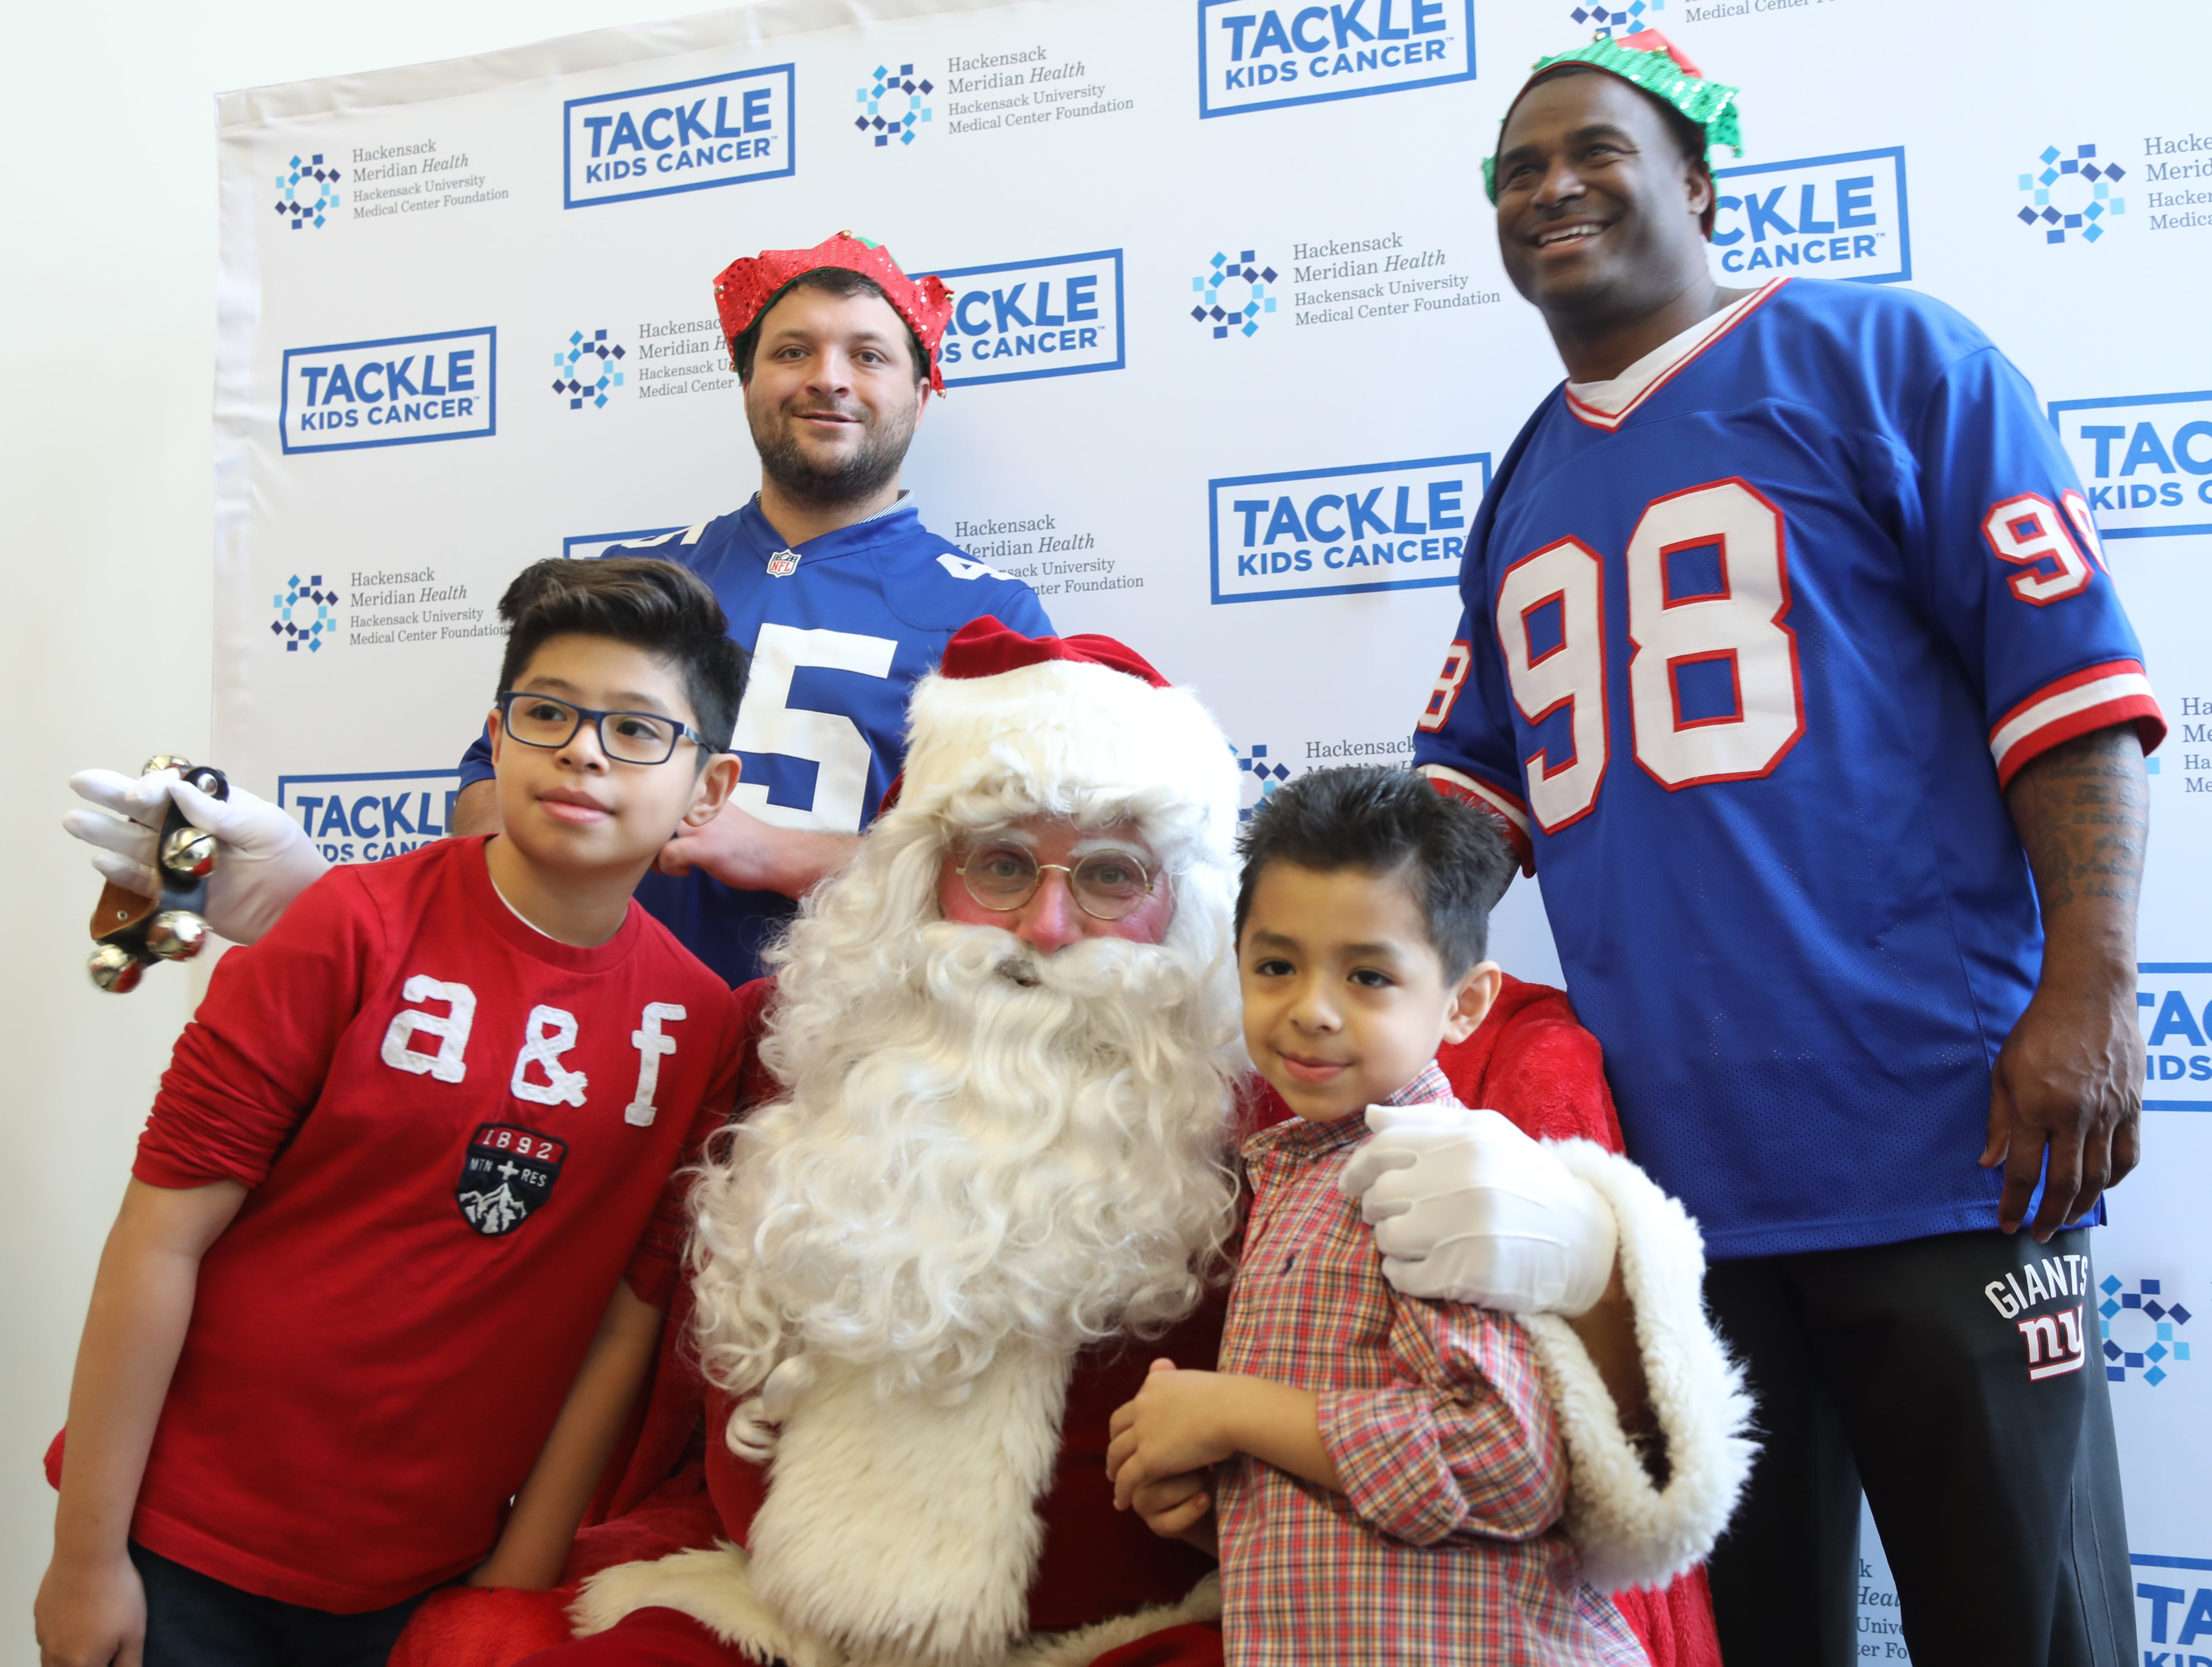 Fans come out to fight cancer, support Giants at Tackle Kids Cancer event